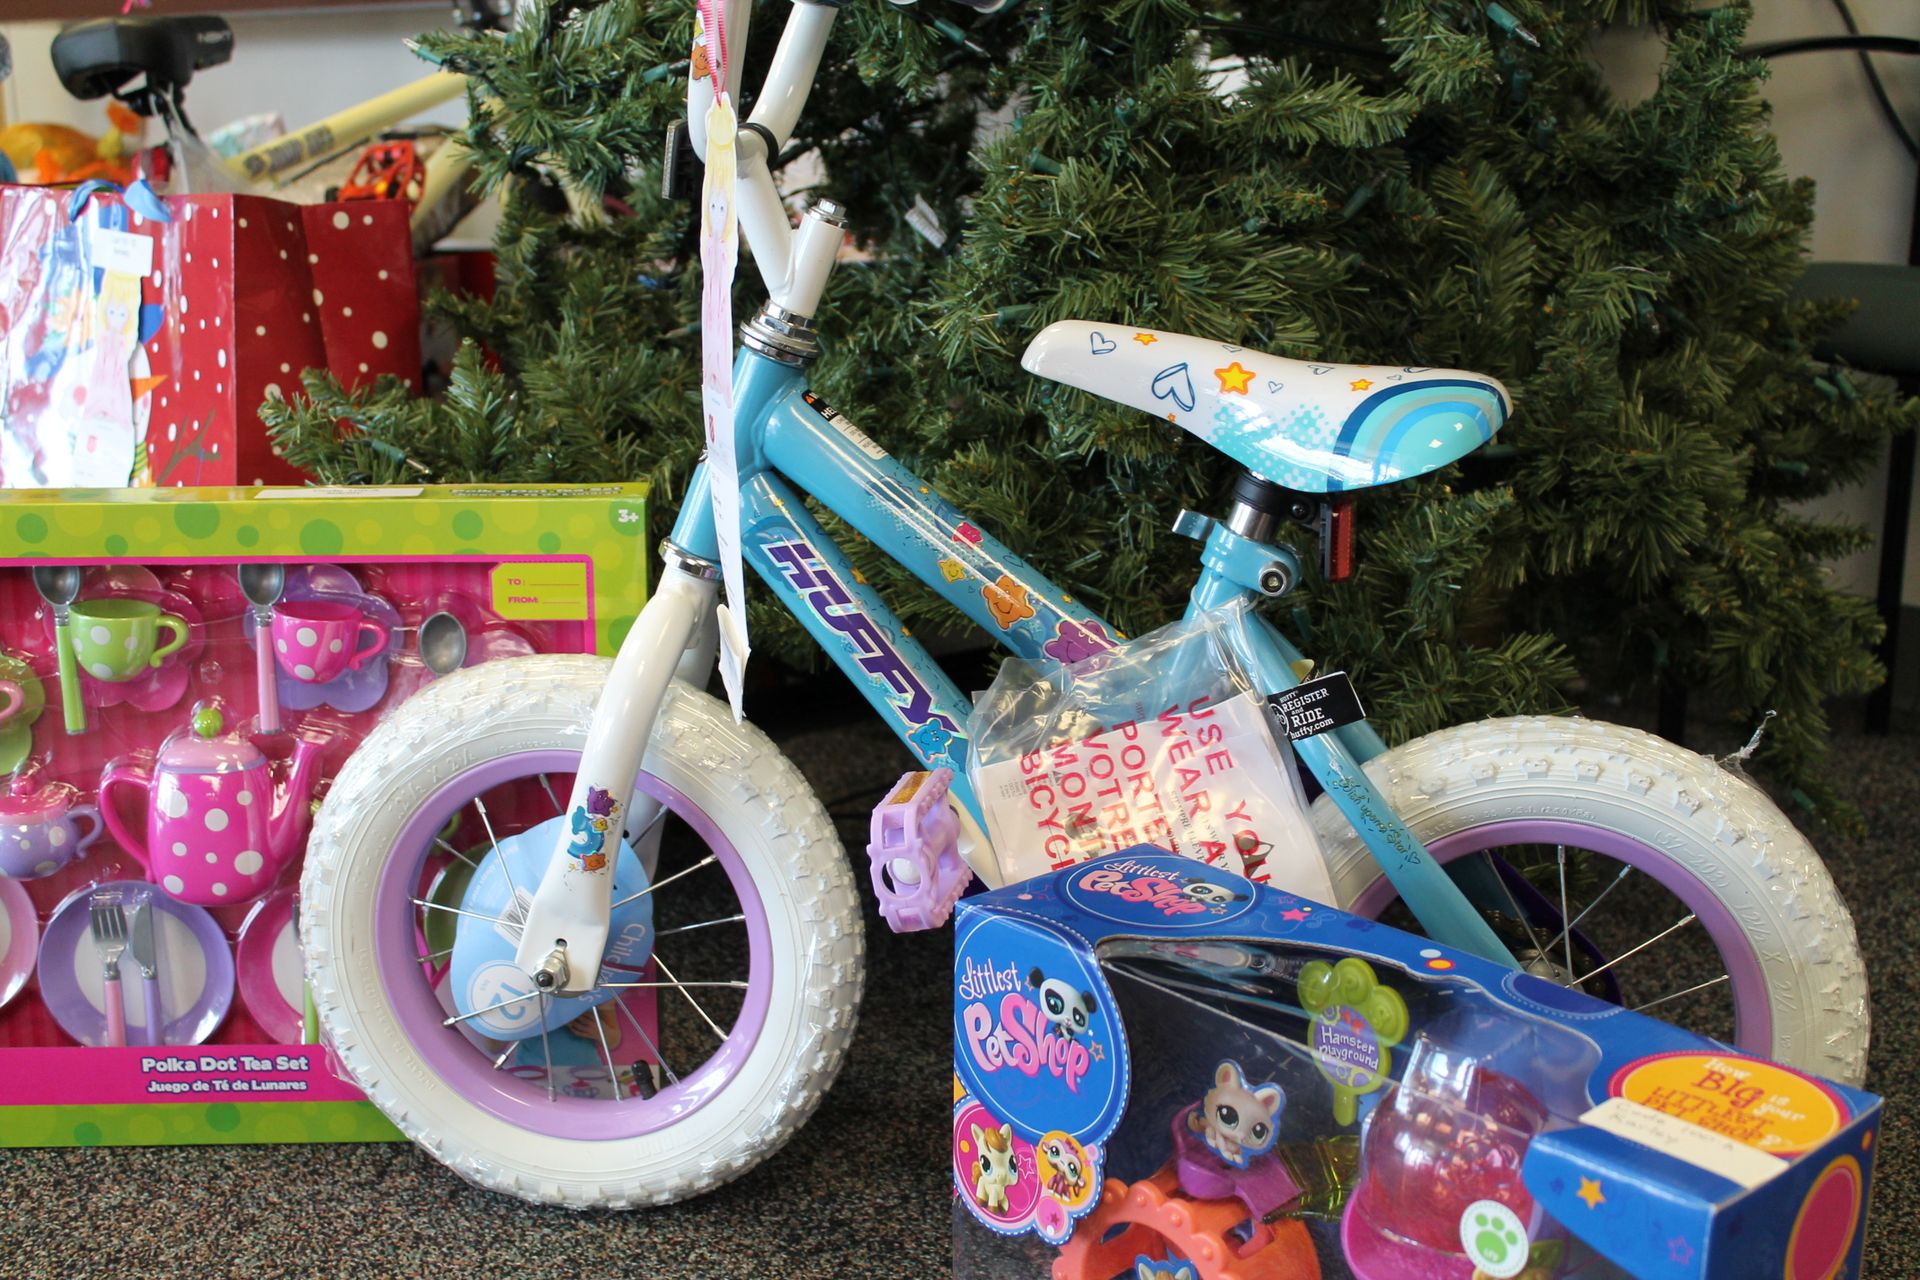 Oconee Nuclear Station employees collected enough toys through their toy drive to make more than 140 children's Christmas more special.